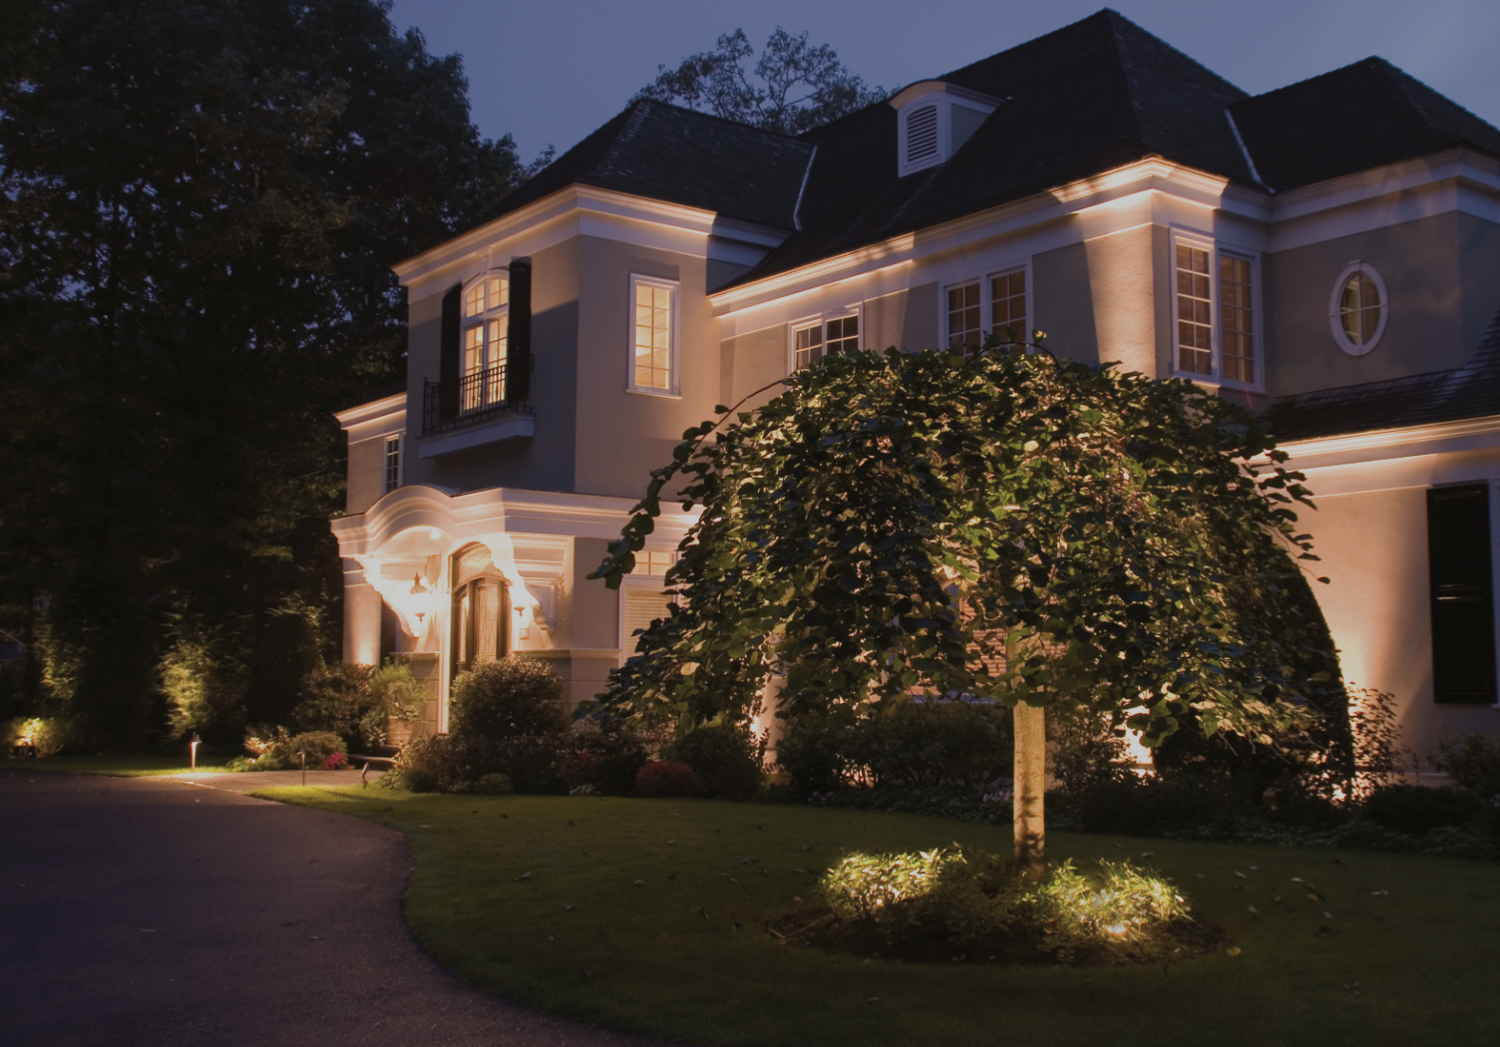 Briarcliff manor ny landscape lighting outdoor lighting company landscape lighting in briarcliff manor ny aloadofball Image collections